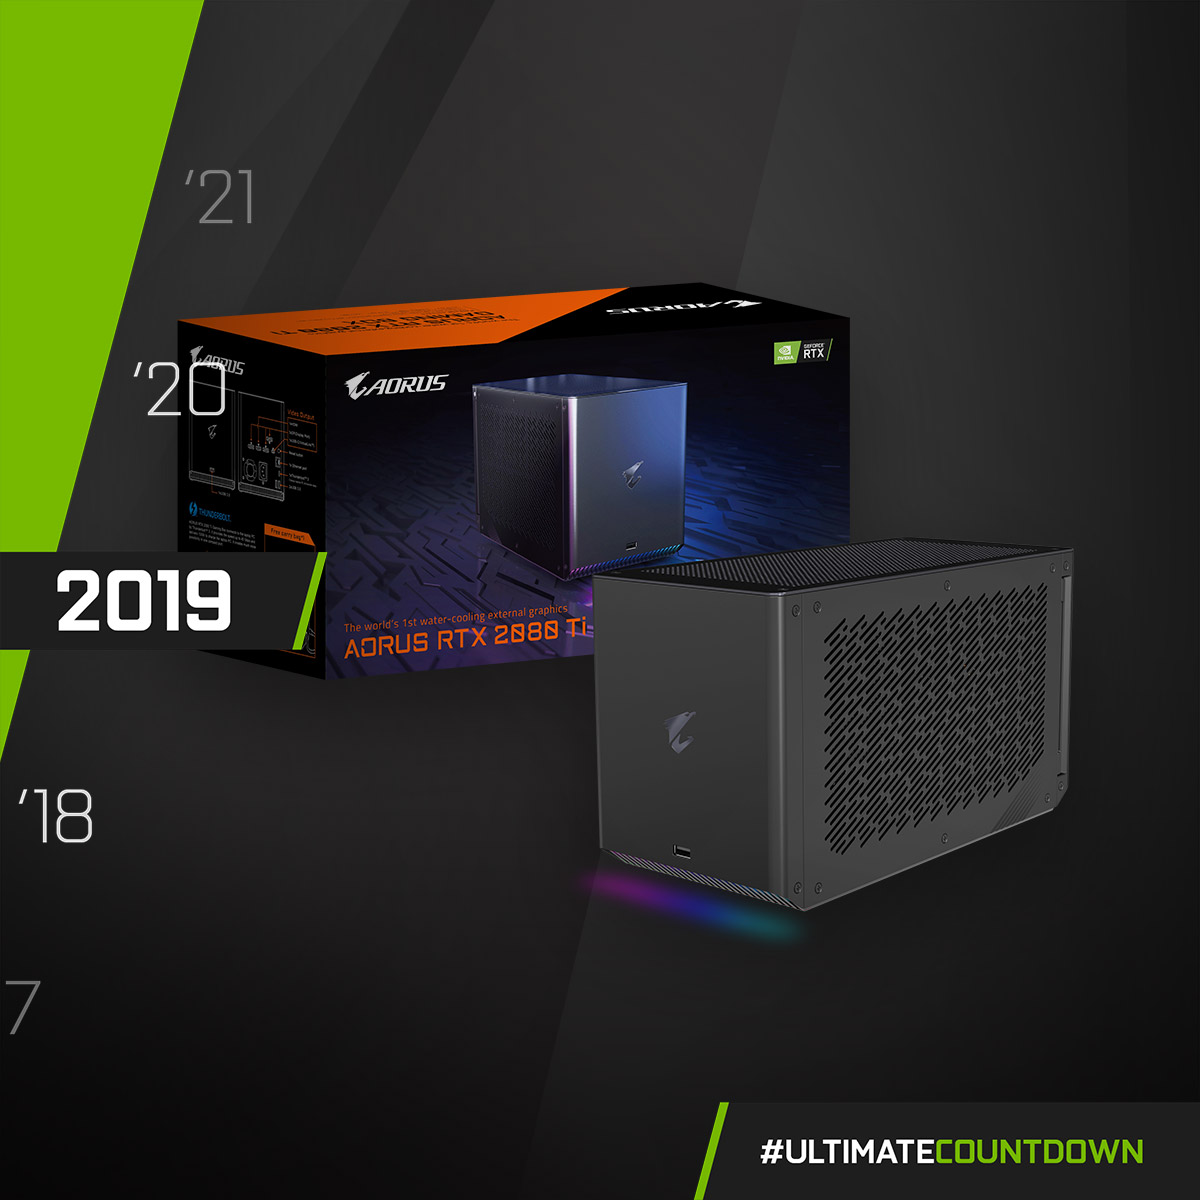 New Era! The world's first all-in-one water cooling external graphics card - AORUS RTX 2080 Ti GAMING BOX 💪  #UltimateCountdown #UltimateAORUS #GIGABYTE https://t.co/8vuoXRqSid